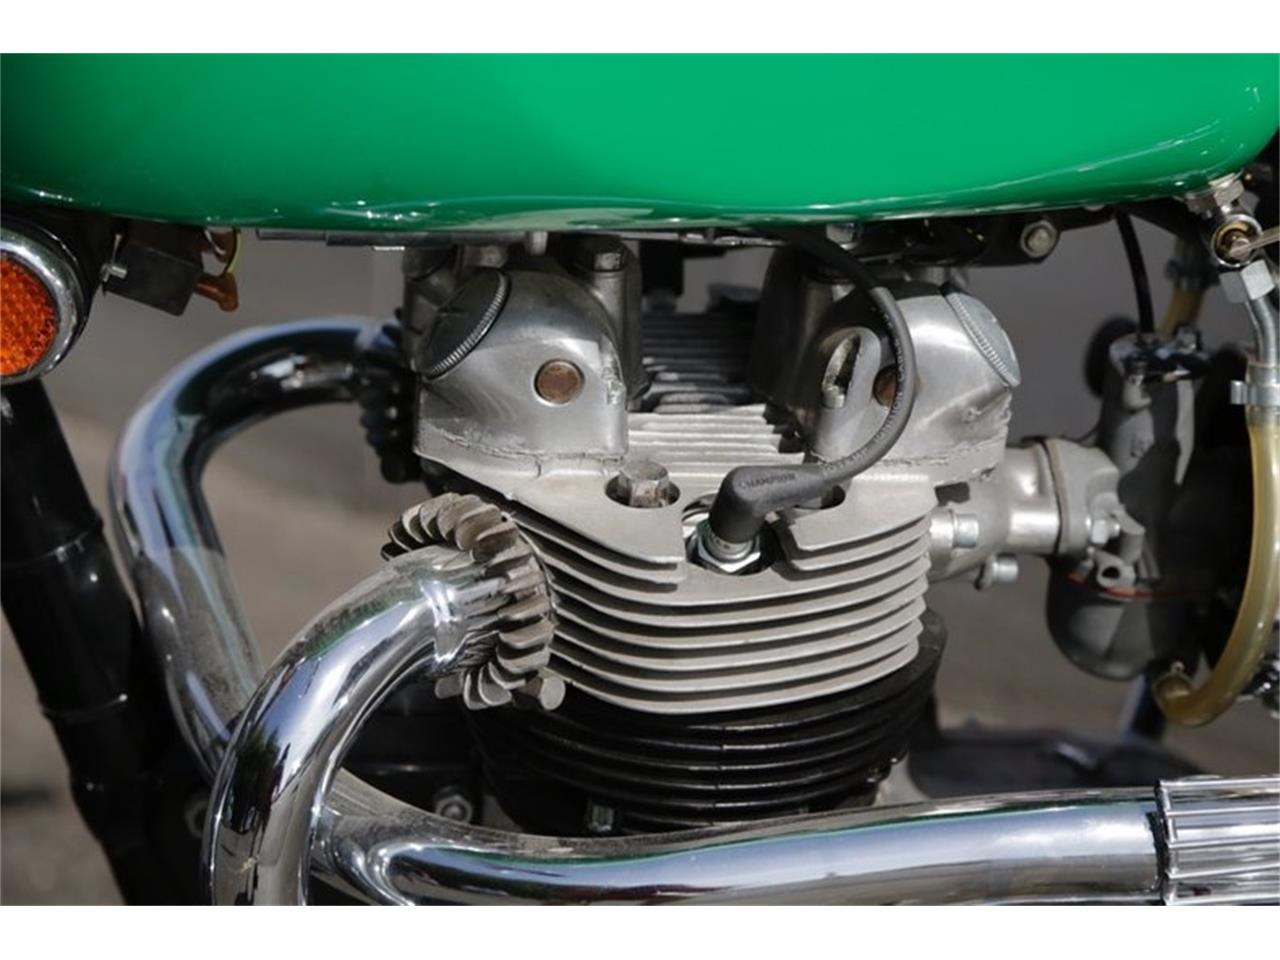 Large Picture of '69 Motorcycle located in Washington - $15,000.00 - NPR4